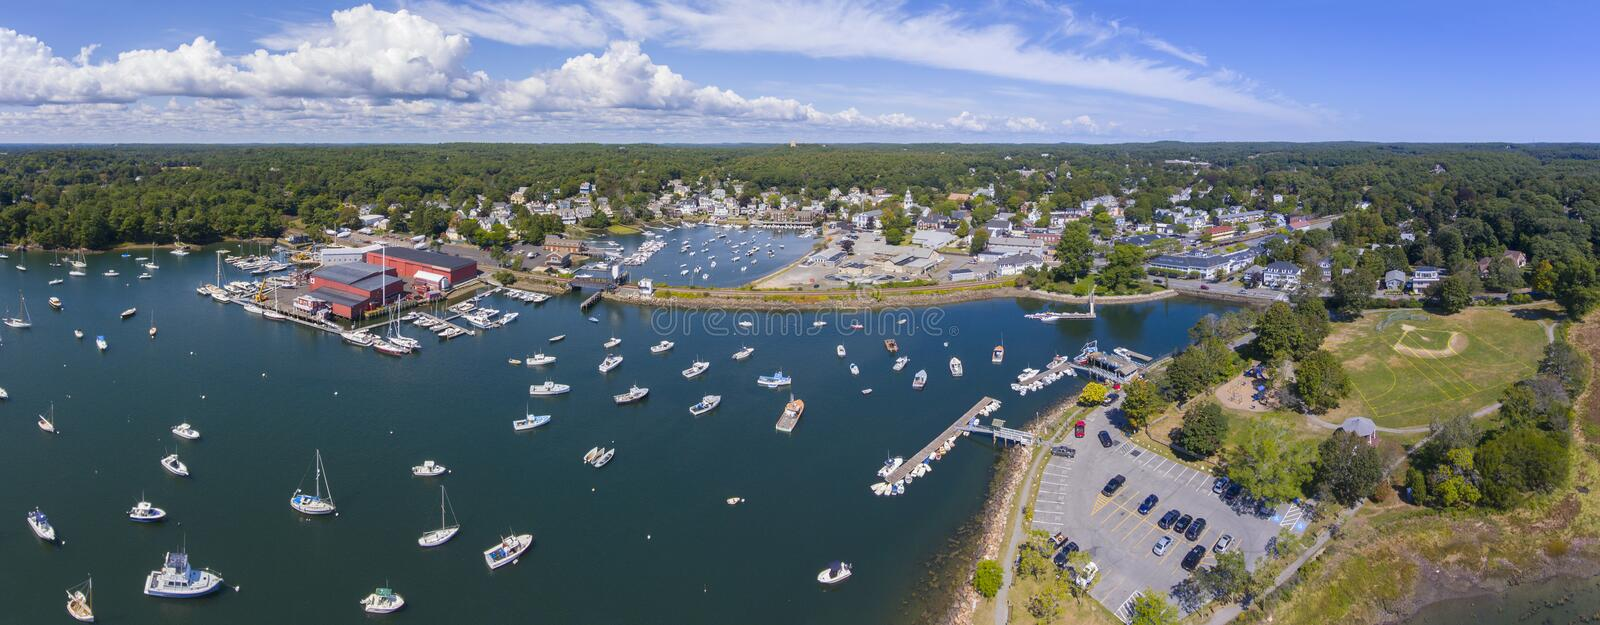 Manchester-by-the-sea, Cape Ann, Massachusetts, USA. Manchester Marine and harbor aerial view panorama, Manchester by the sea, Cape Ann, Massachusetts, USA royalty free stock photography